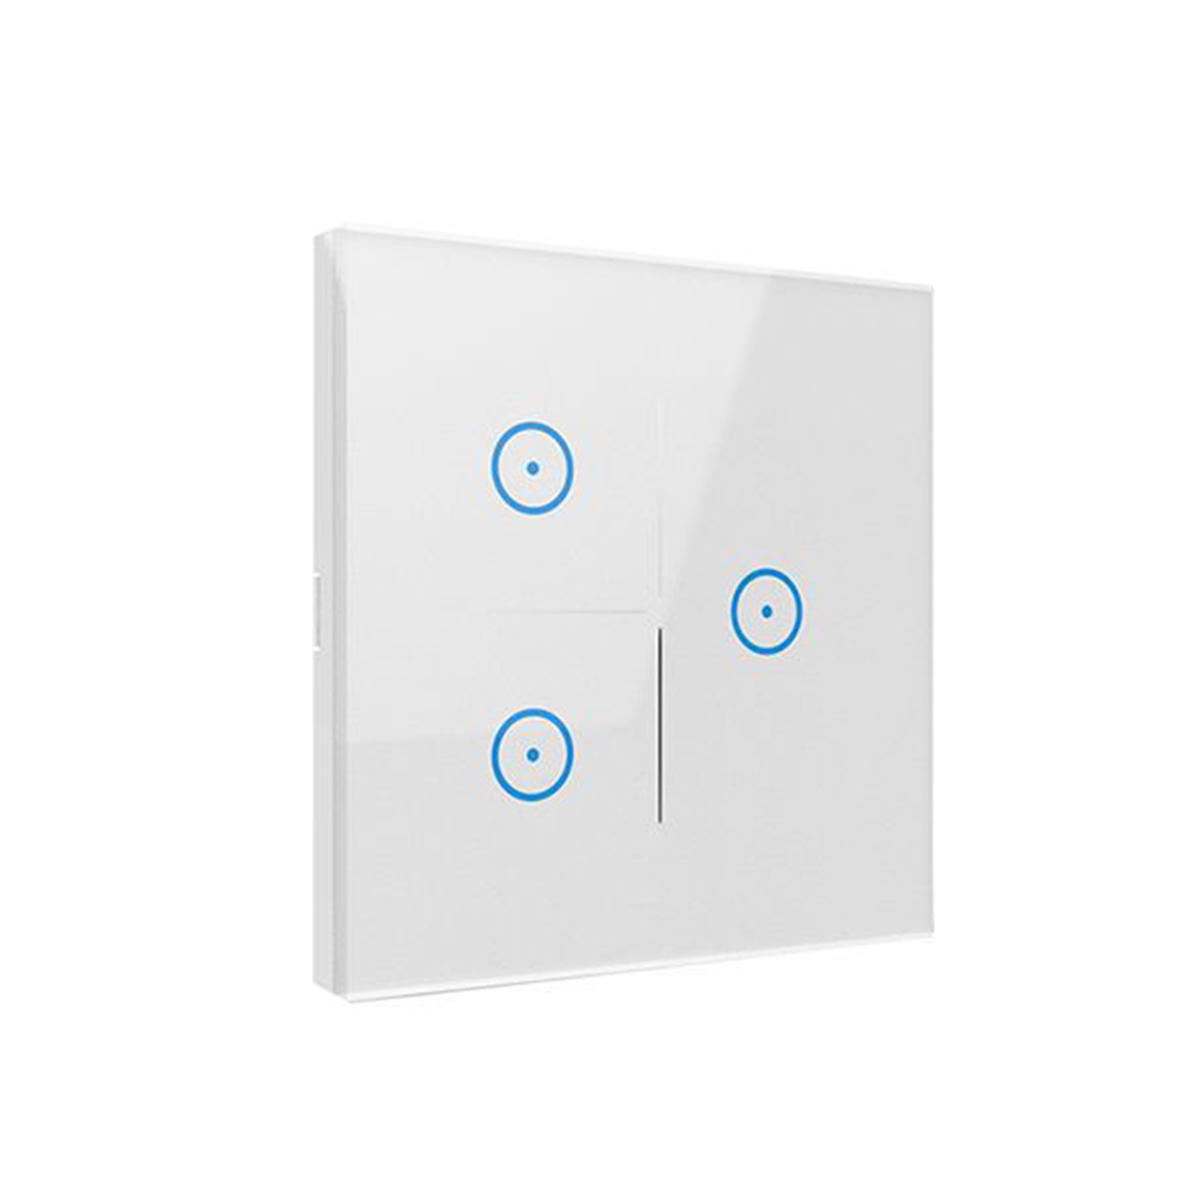 1/2/3 Gang Smart Home WiFi Touch Light Wall Switch Panel For Alexa Google  Home Assistant